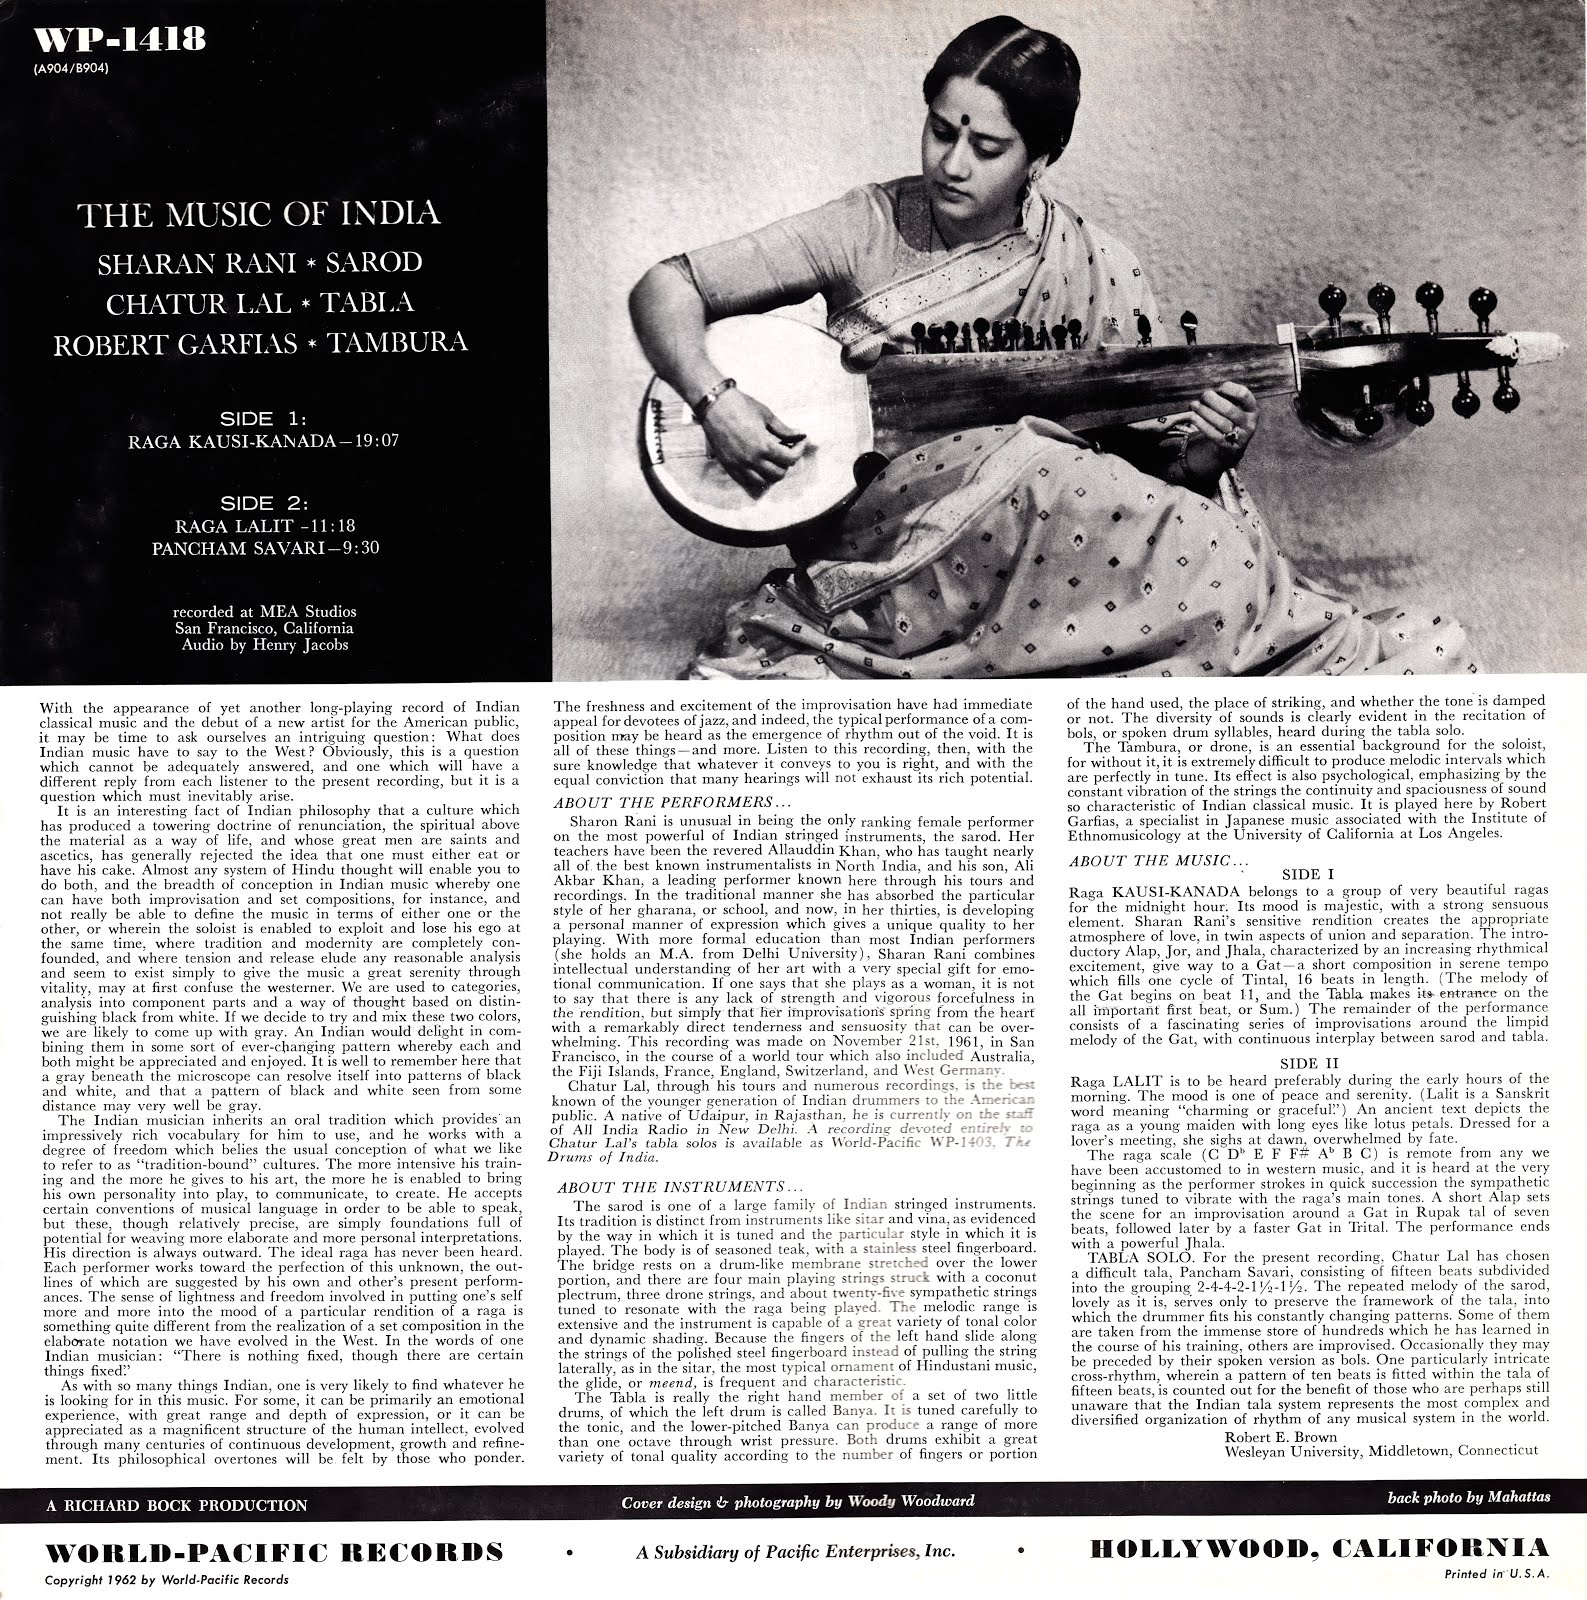 Flat, Black and Classical: Indian Classical Music on Vinyl and